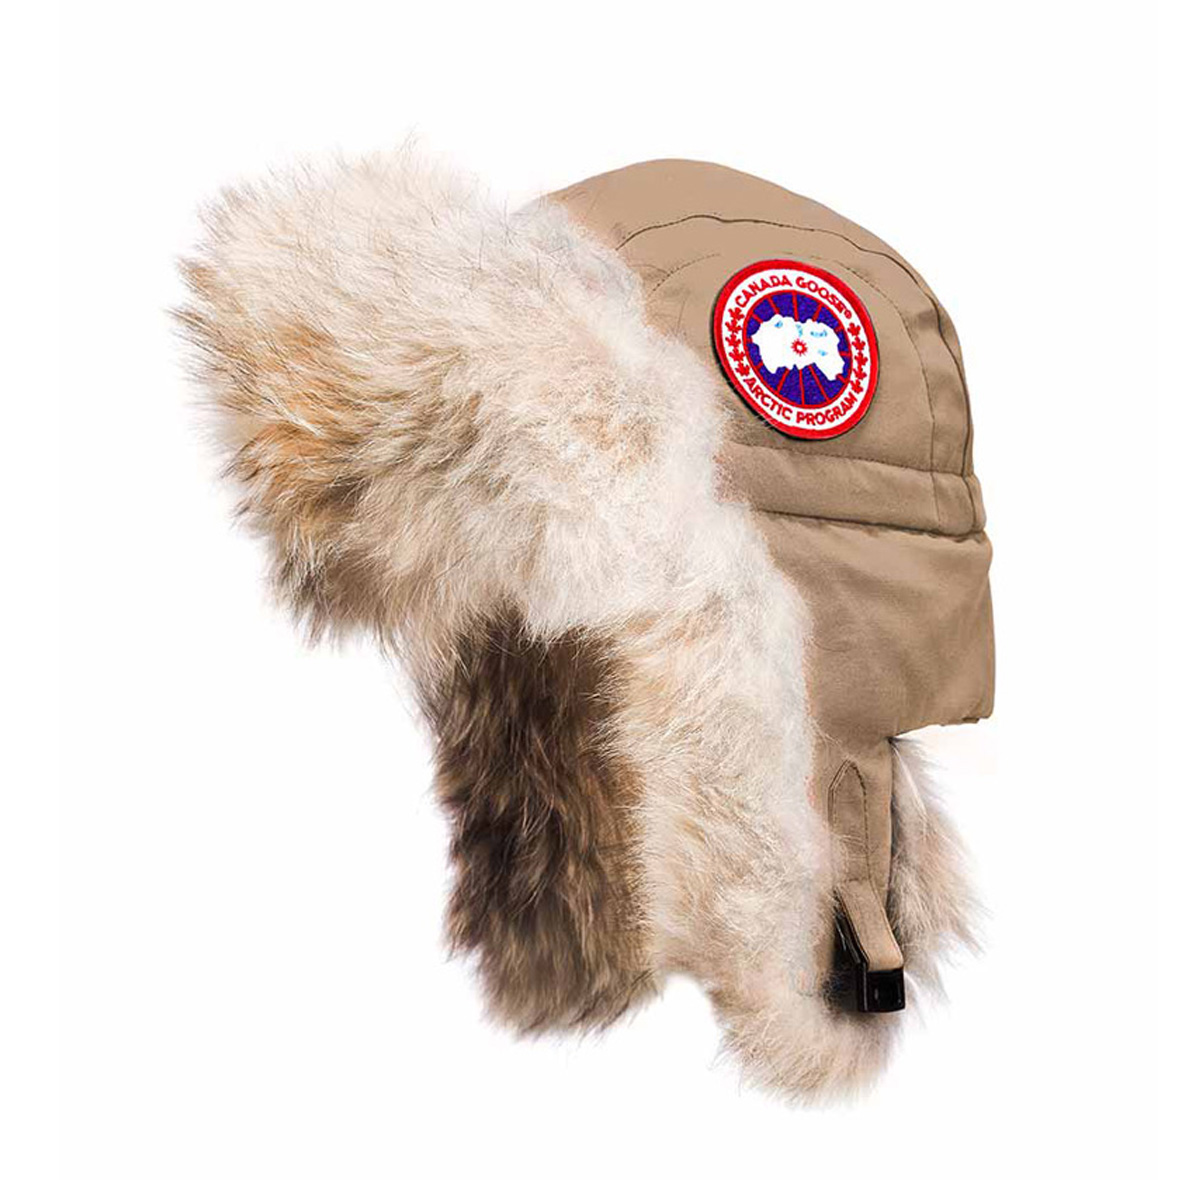 Canada Goose Unisex Aviator Hat TAN For Men